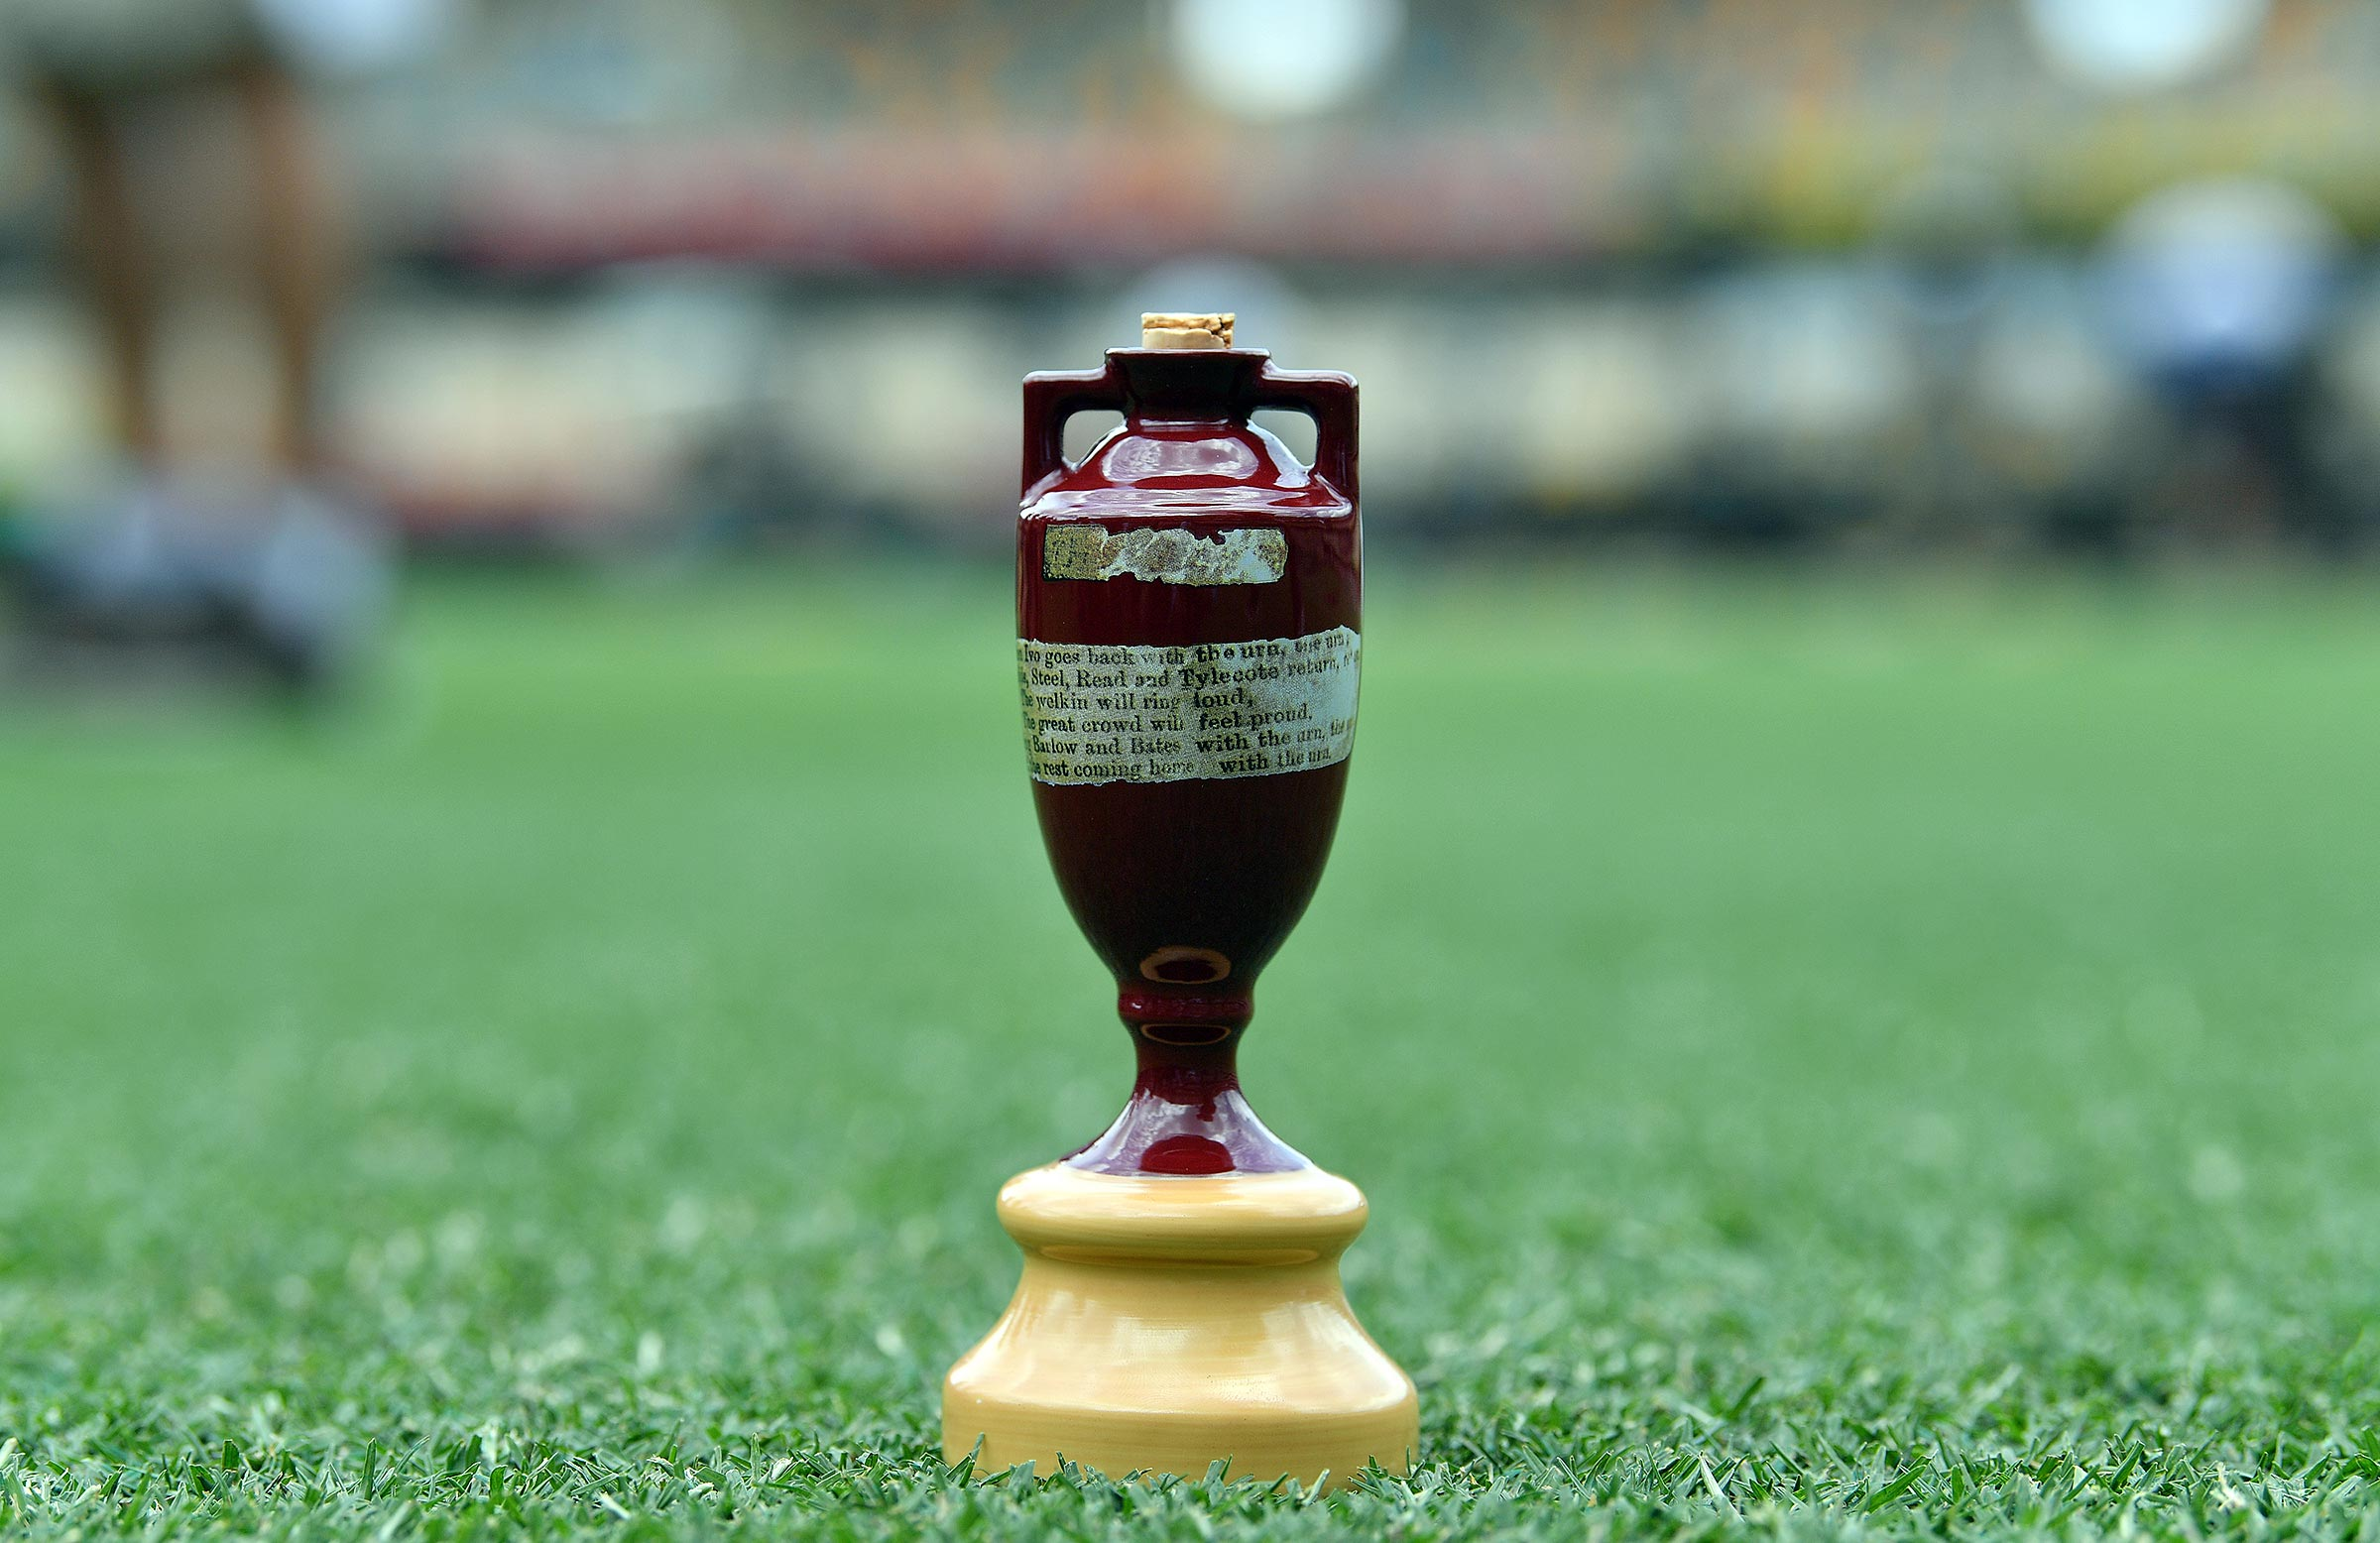 The Ashes will be part of the World Test Championship // Getty